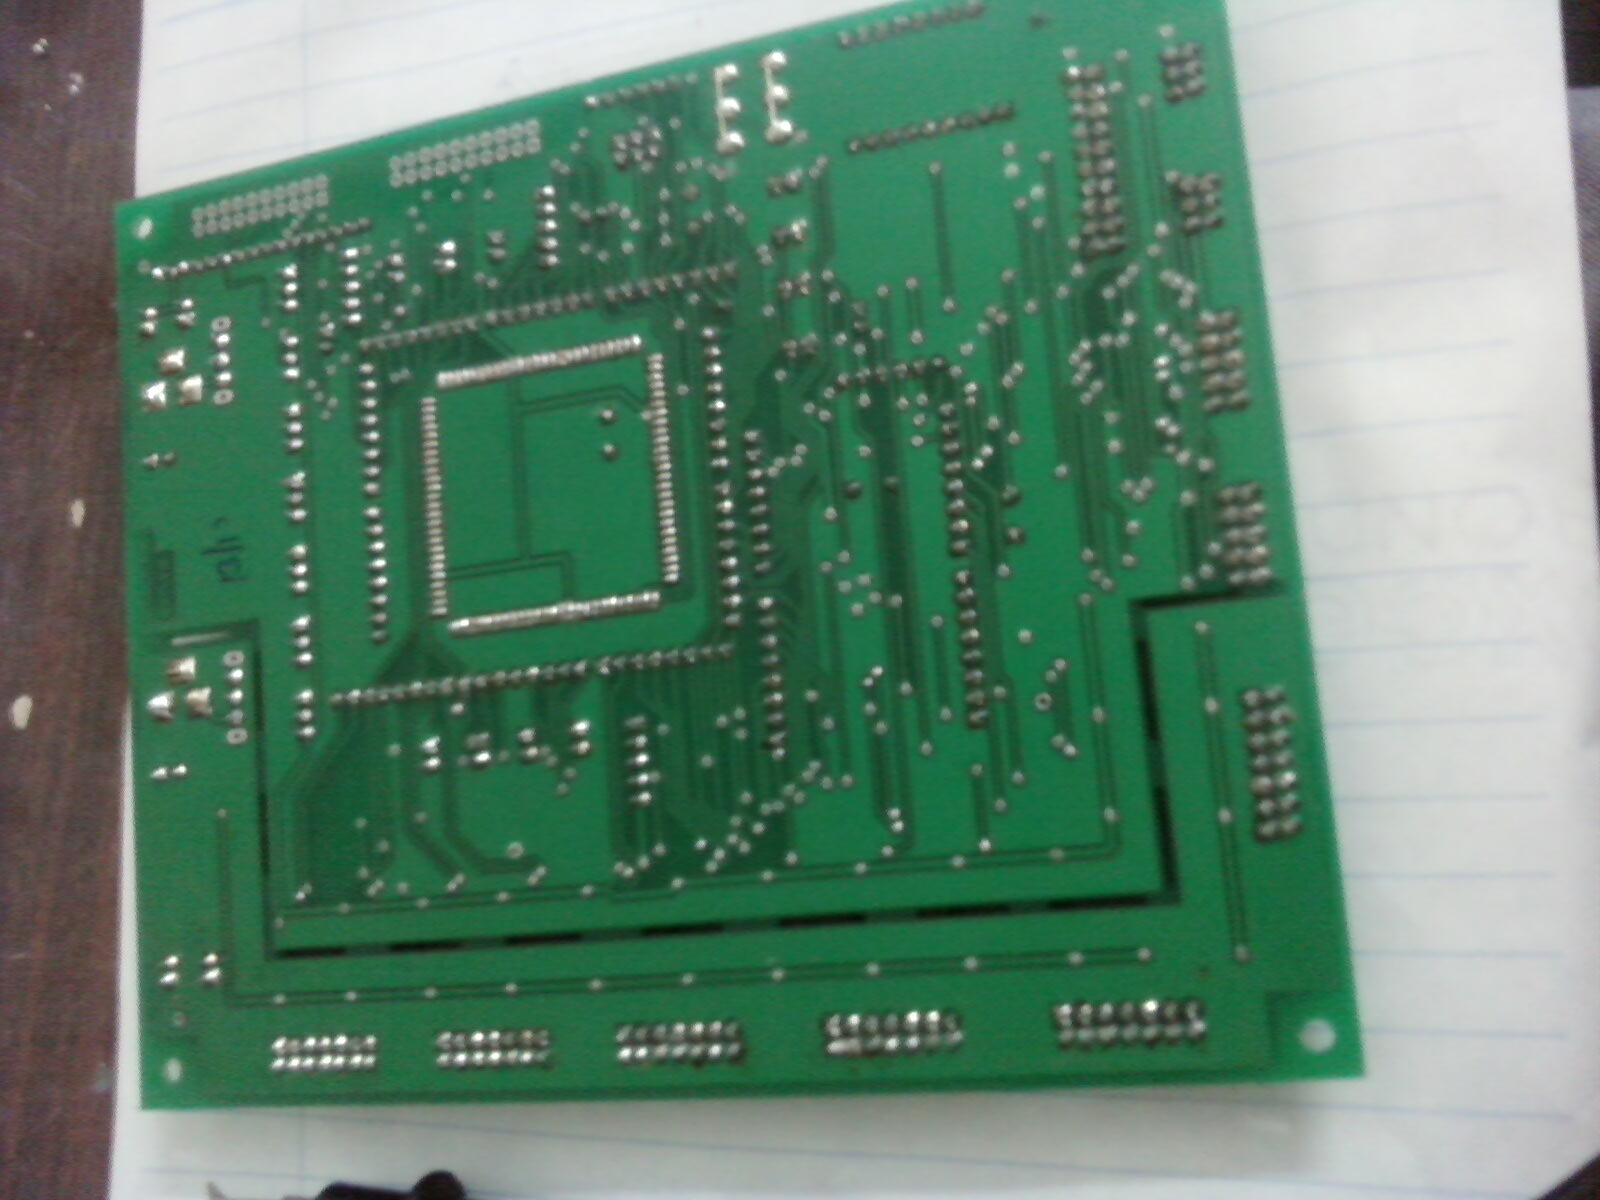 Motherboard with ATMEL micro-controllers